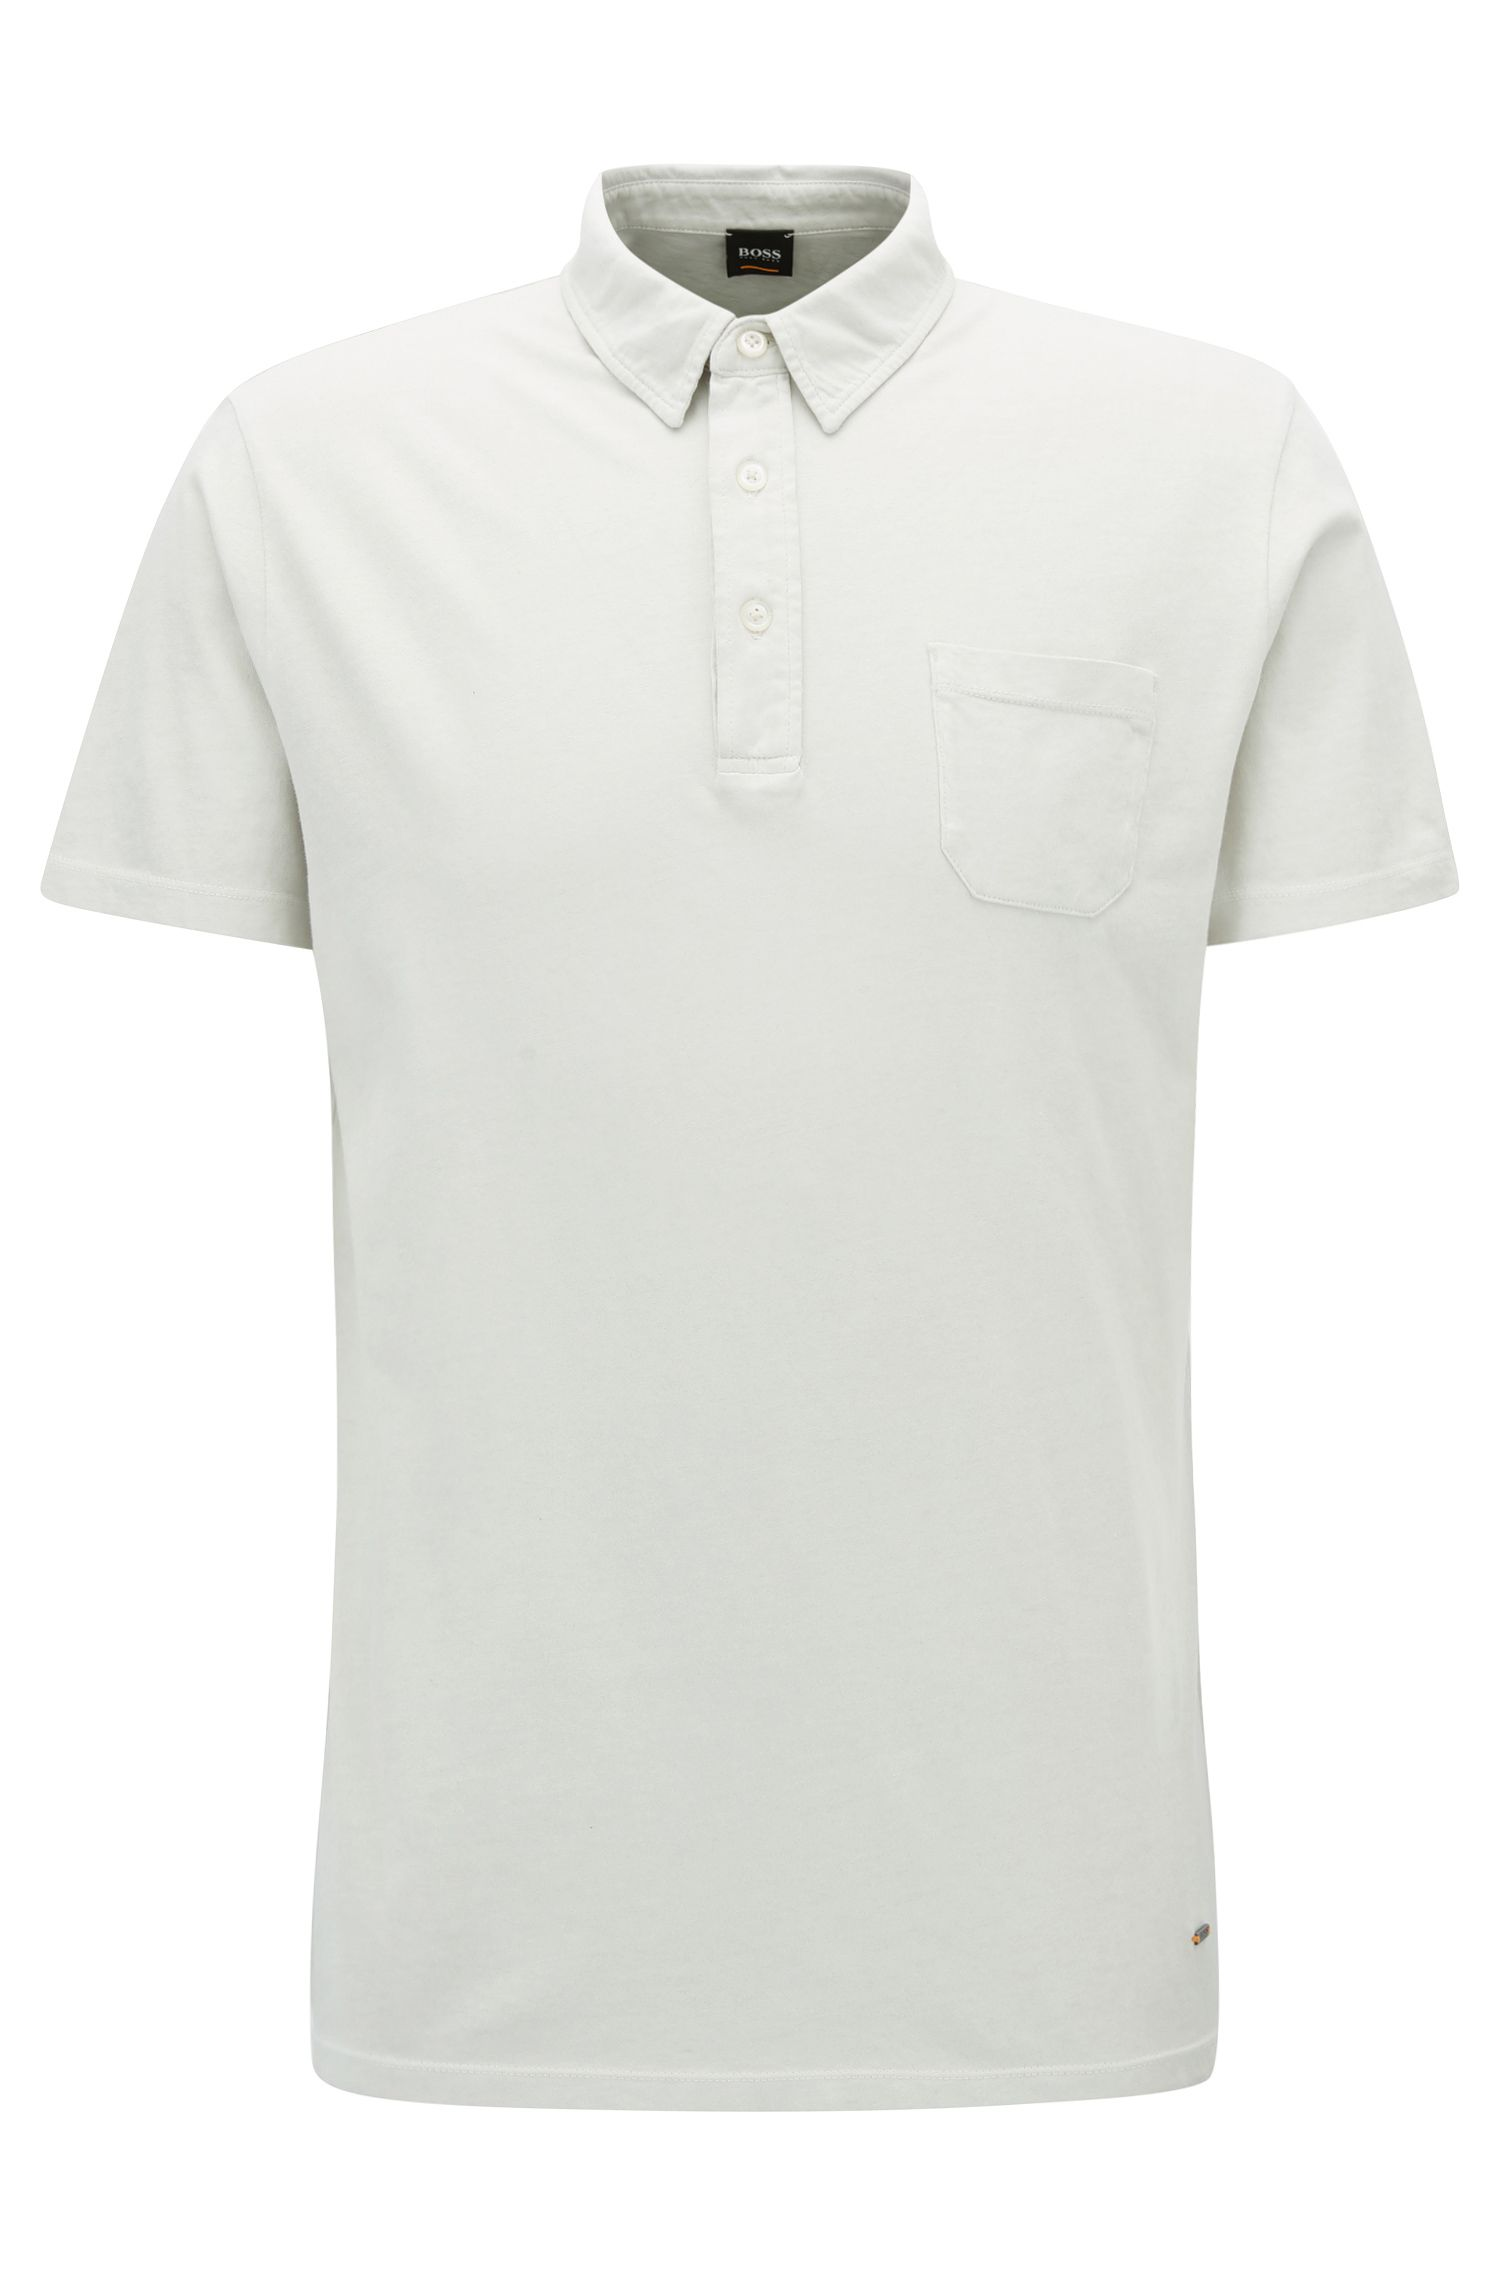 Regular-fit polo shirt in garment-dyed single jersey